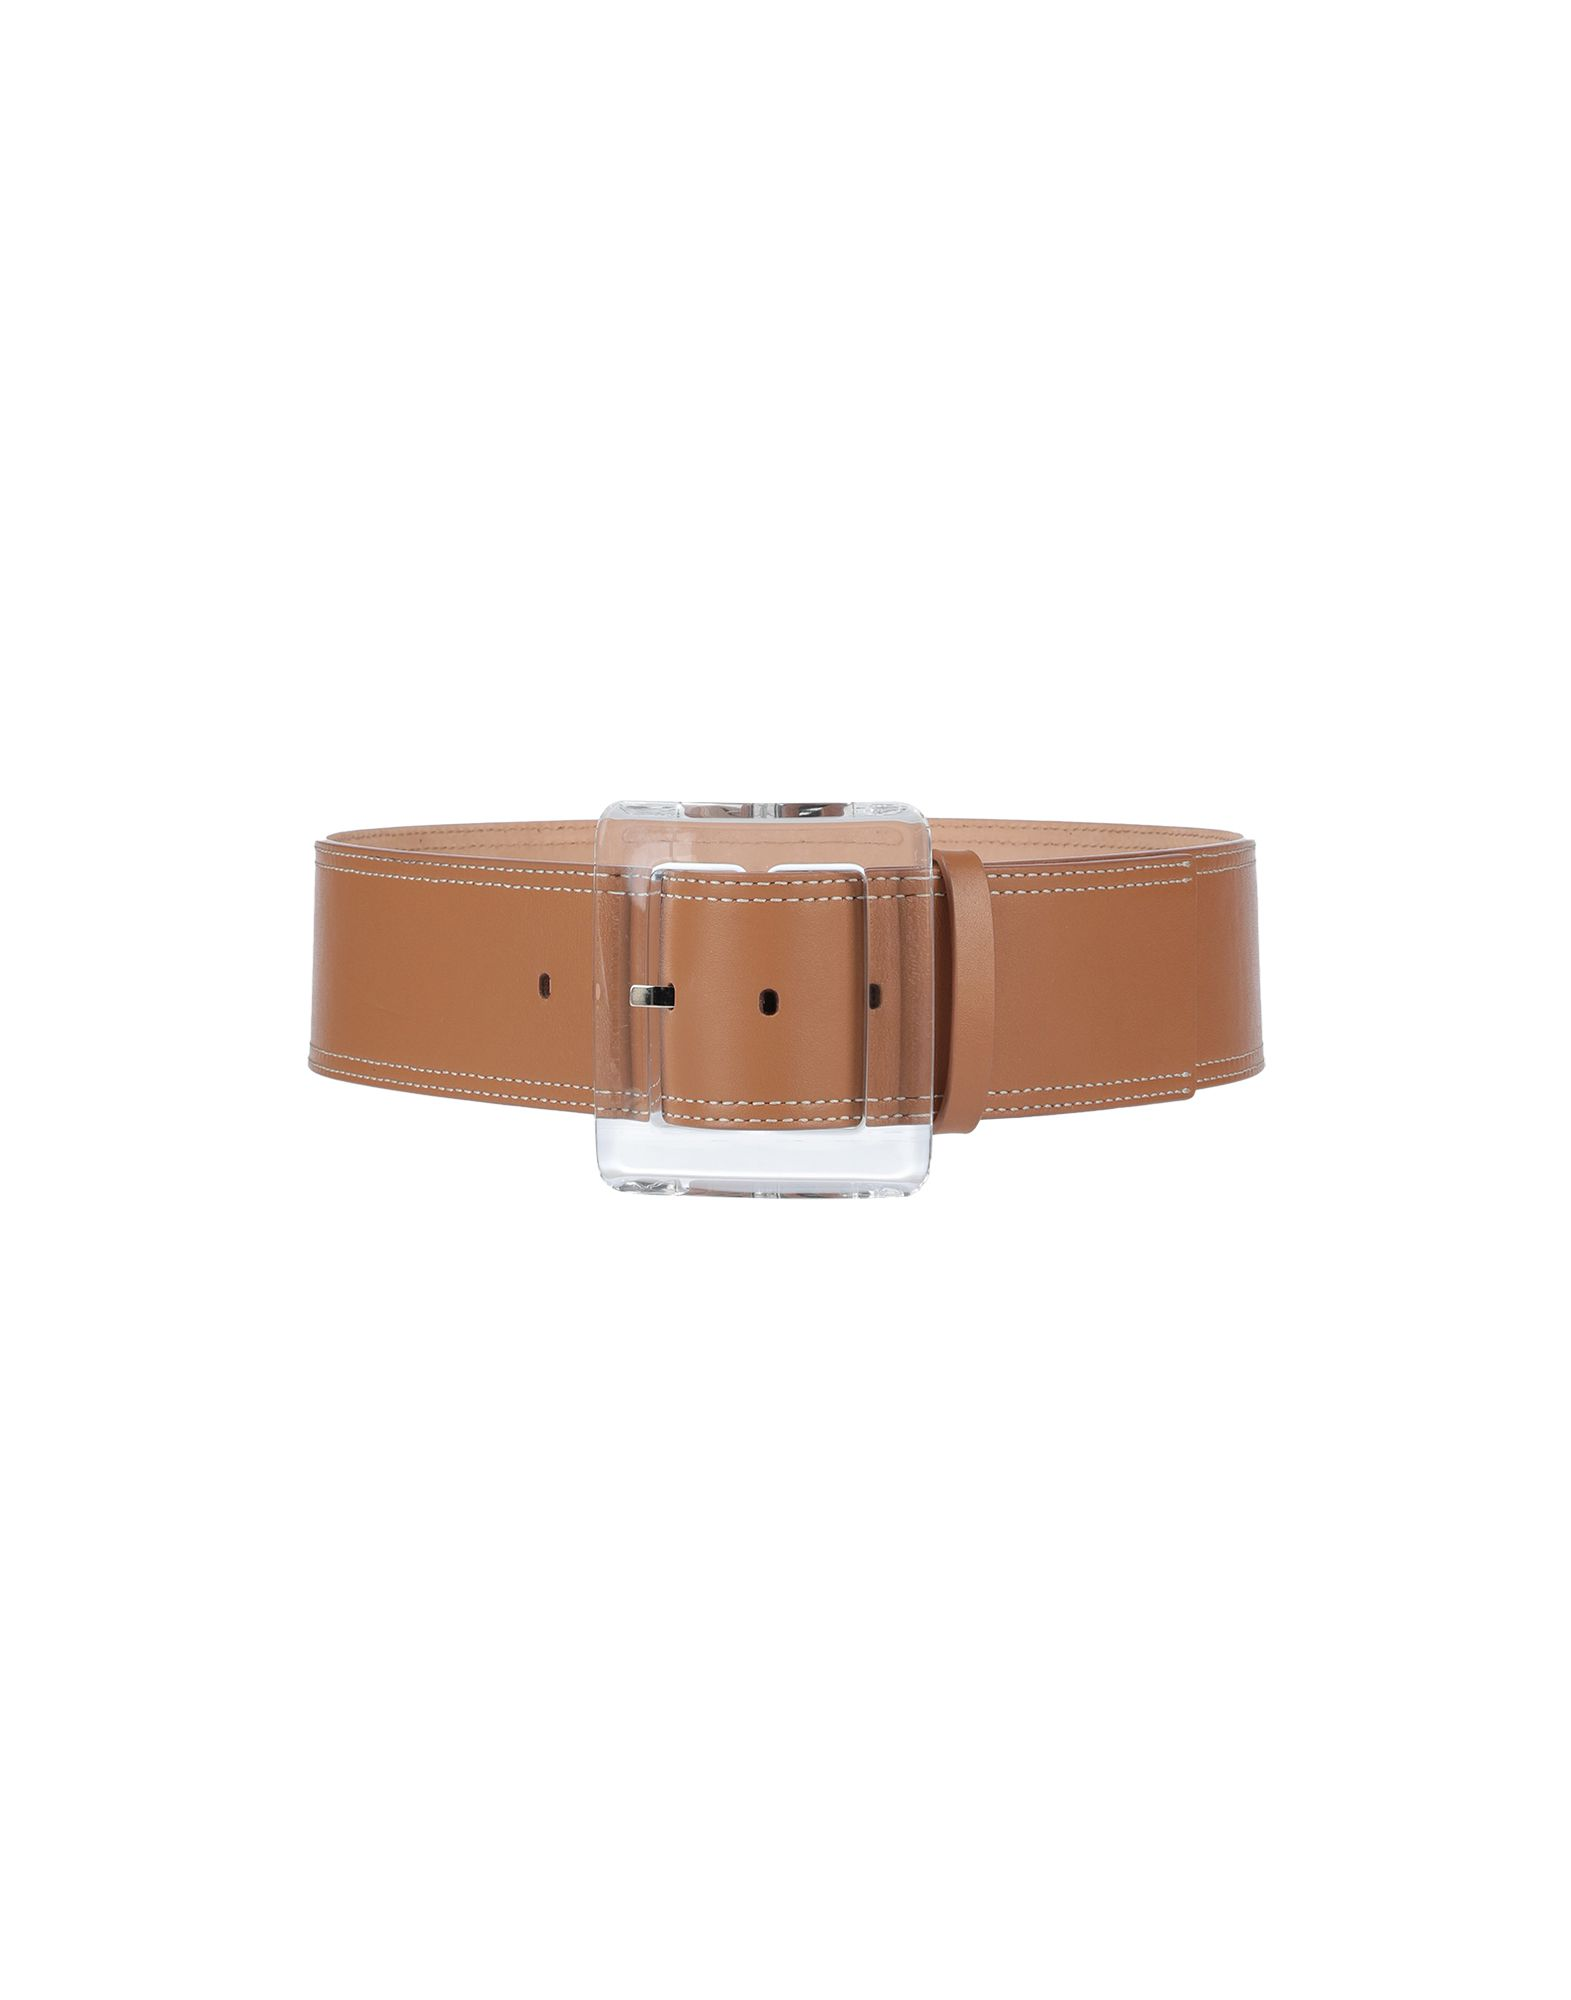 VERONICA BEARD Belts. no appliqués, basic solid color, wide, buckle fastening, contains non-textile parts of animal origin. Soft Leather